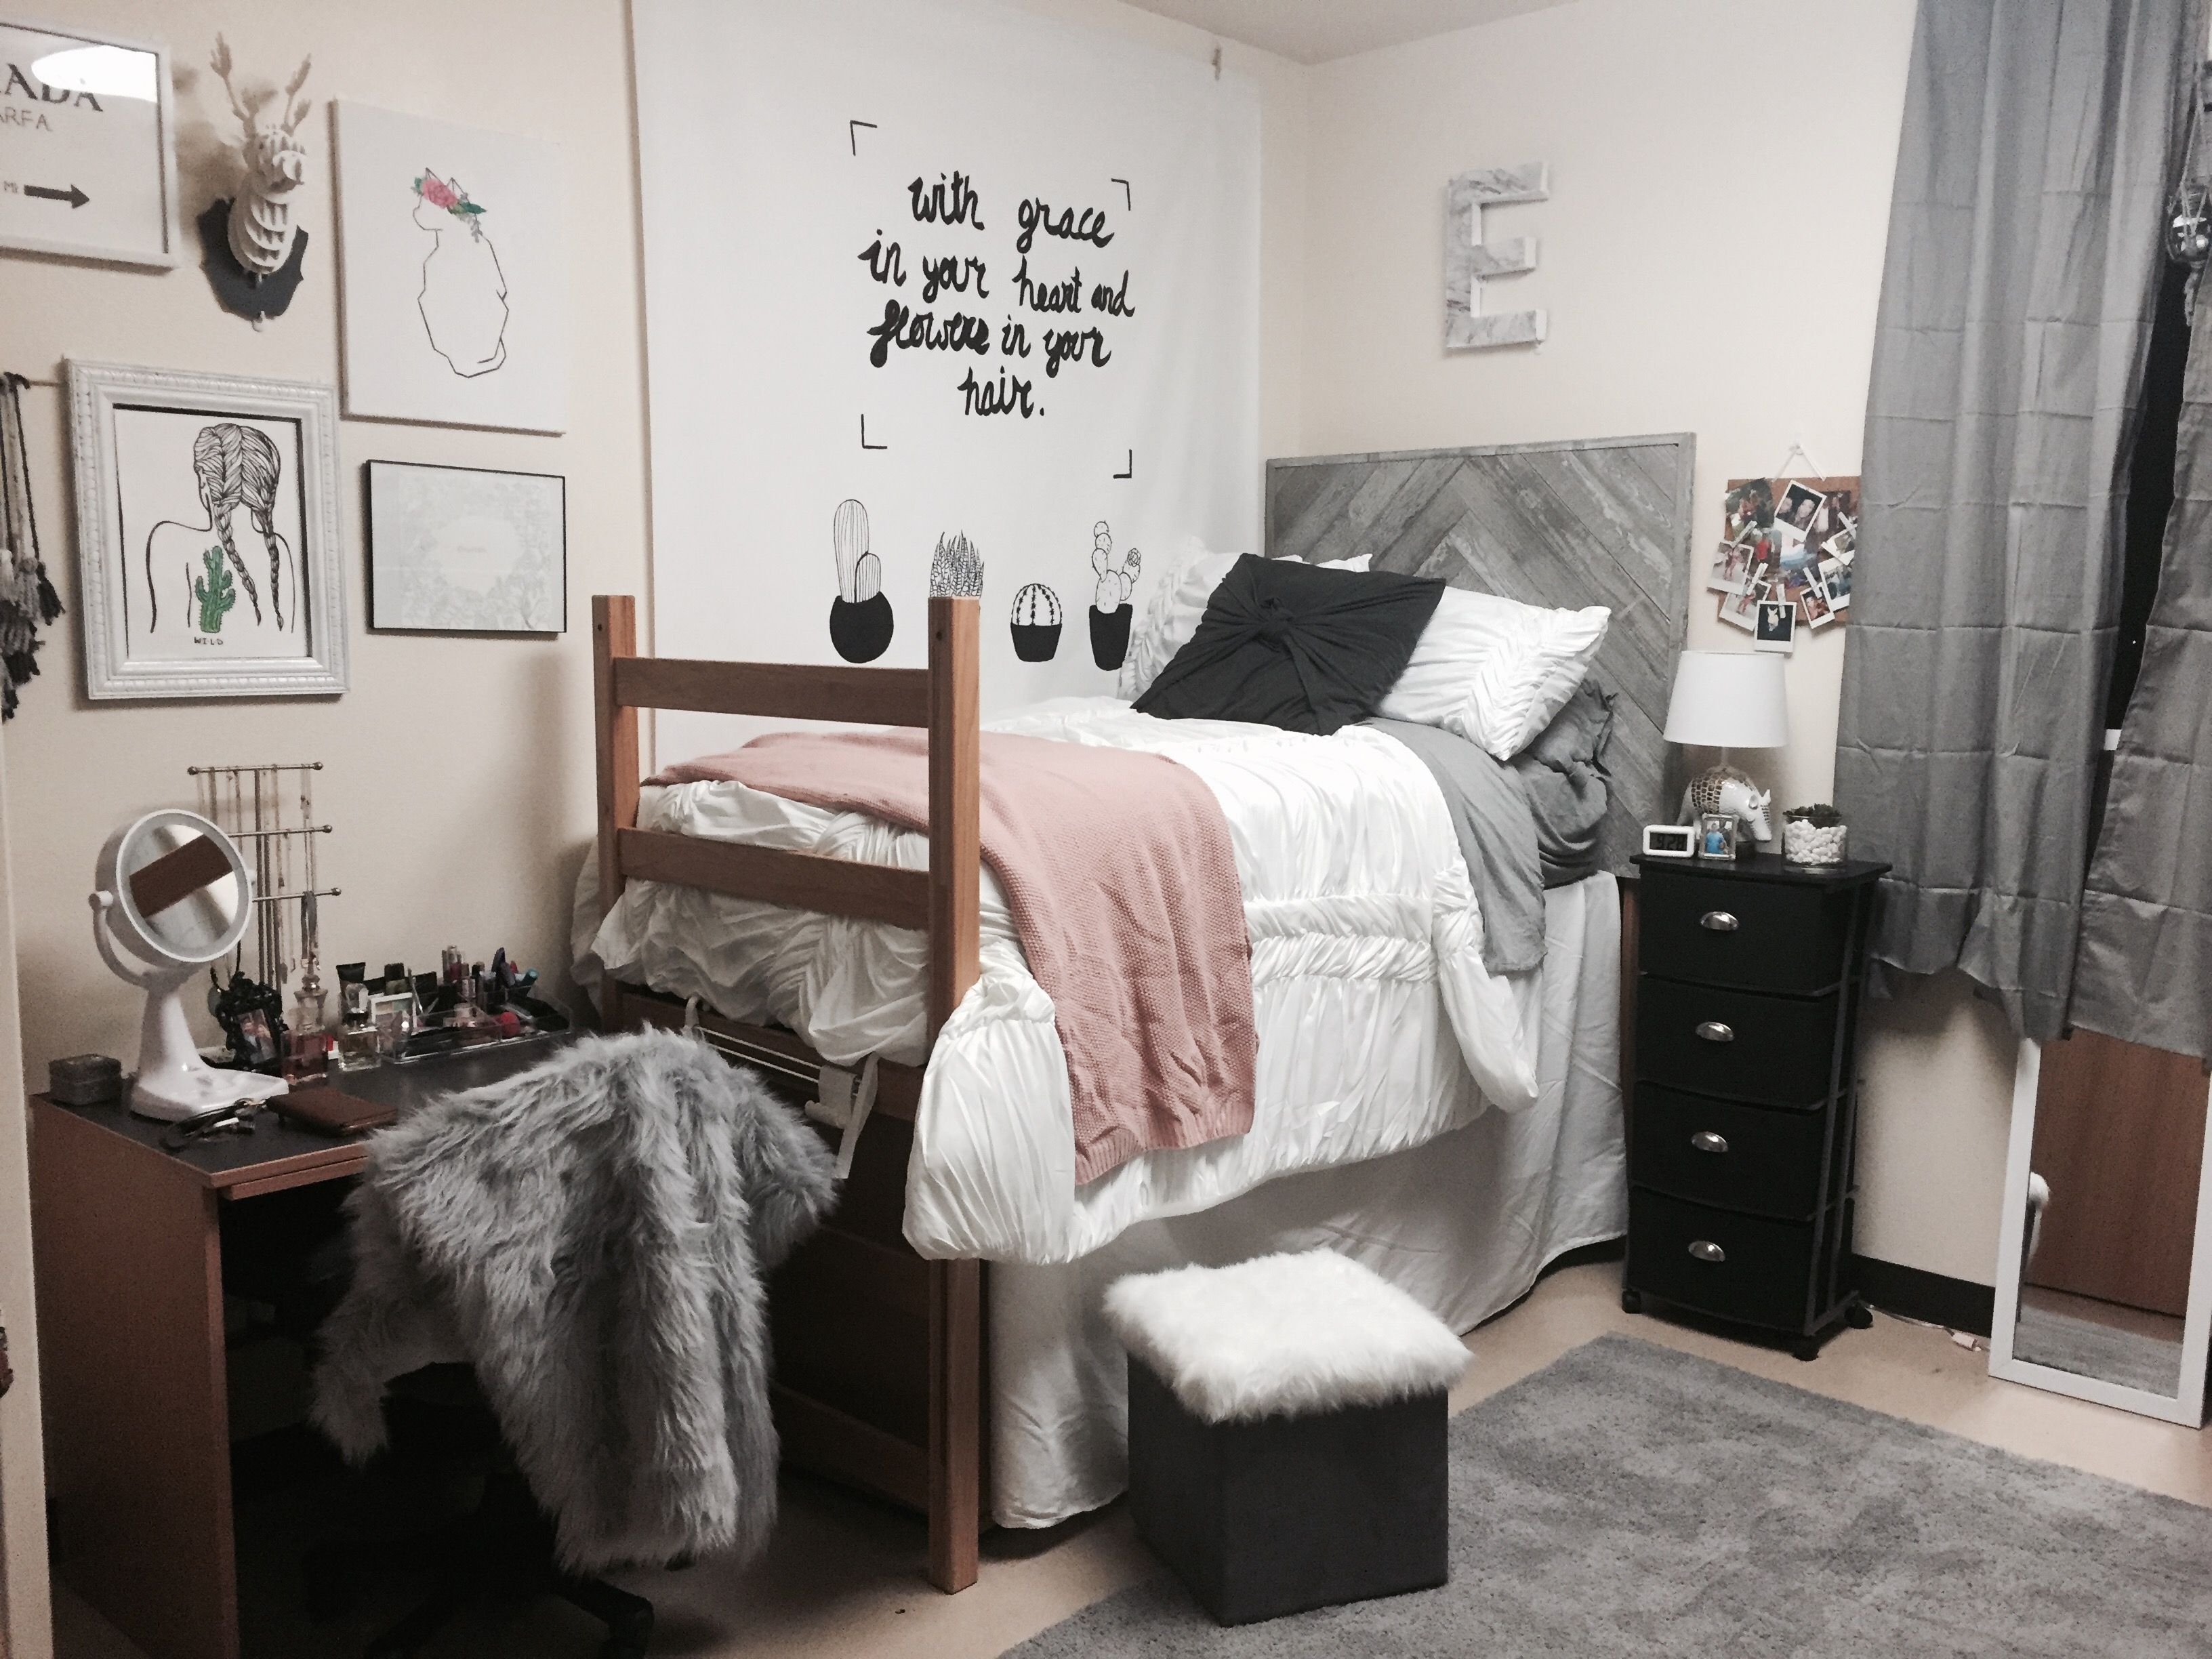 Creative Dorm Room Ideas to Make Your Space More Cozy  Dorm room